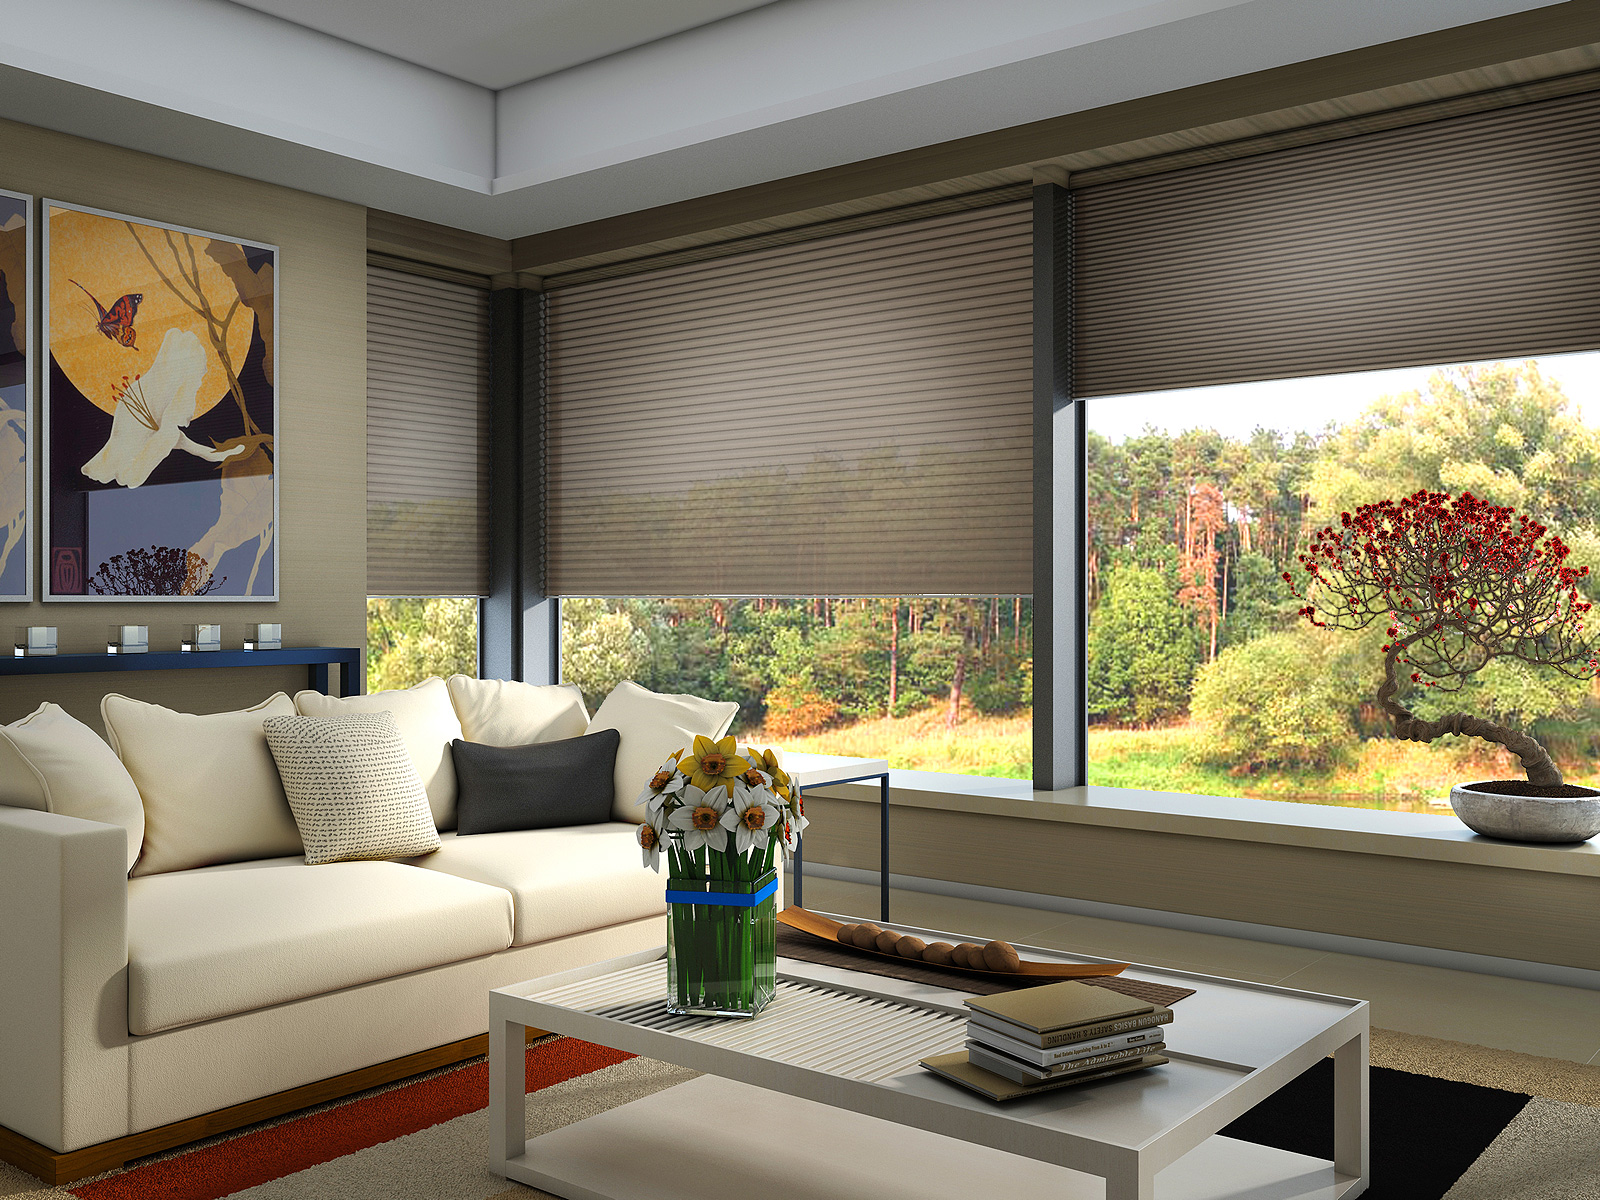 motorized room in curtains glass options small cheap shades tfile blind windows window bay and door valances blinds doors treatments electric full white ideas roller slide patio pict curtain coverings shade for drapes amazing sliding trend double living of size